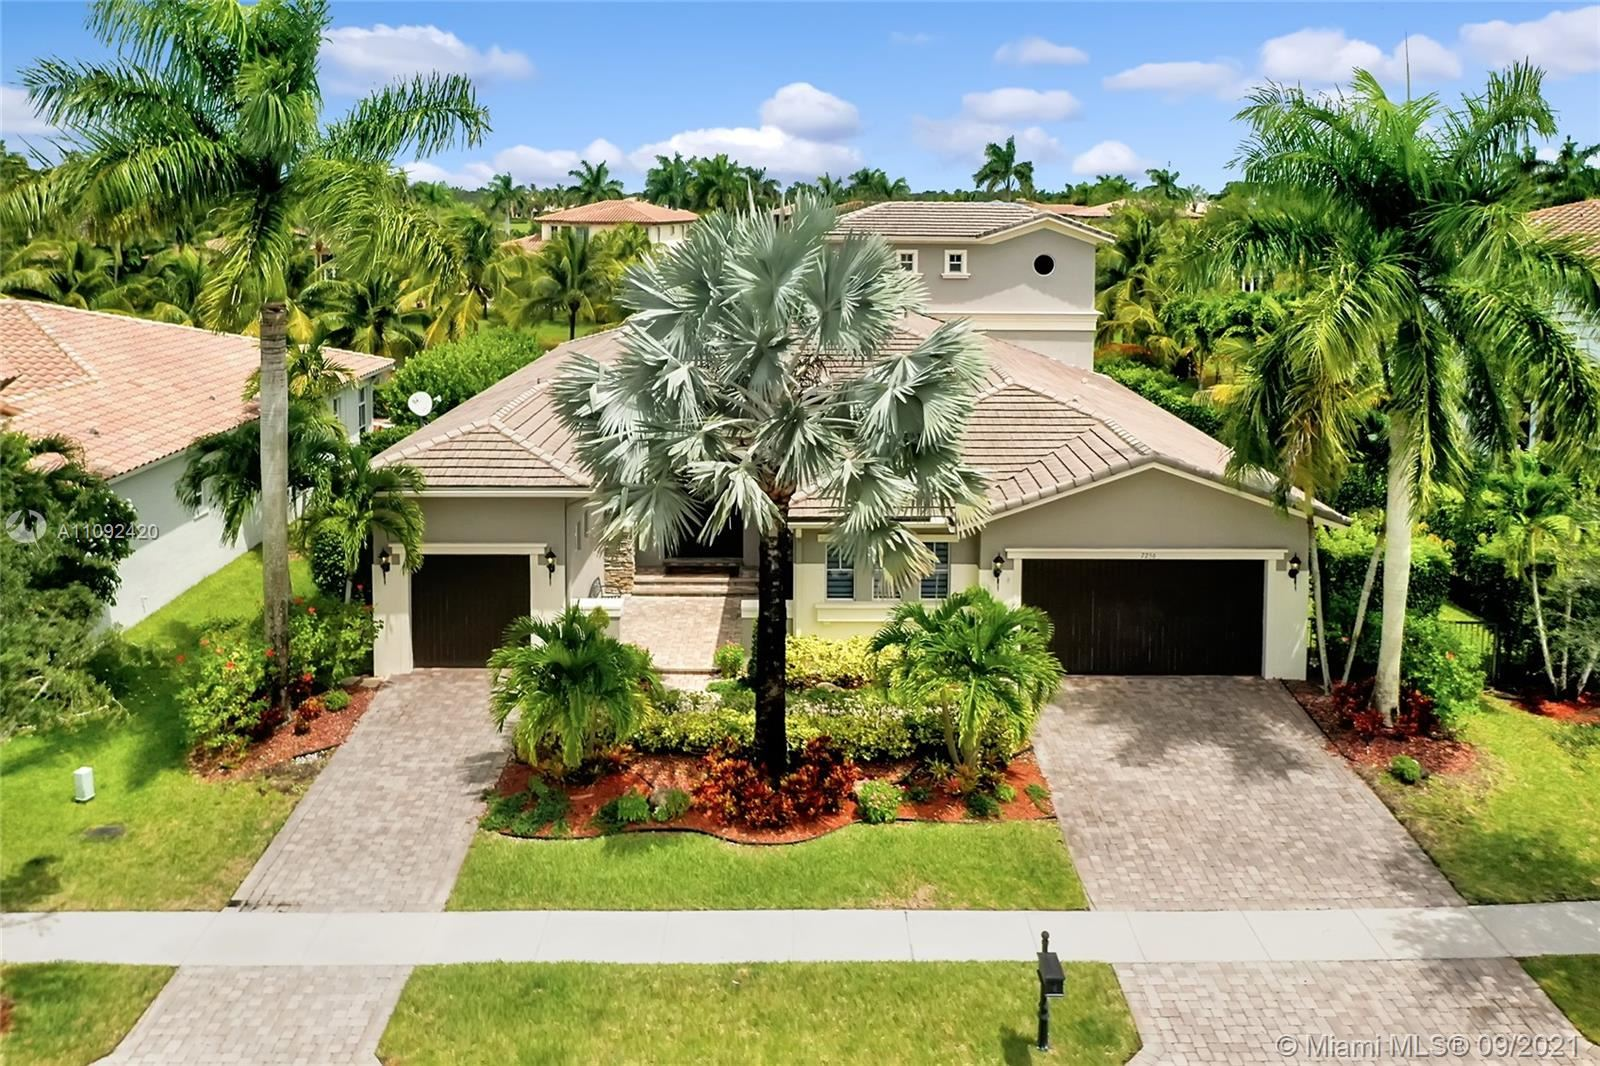 7256 NW 123rd Ave, Parkland, FL 33076 - #: A11092420